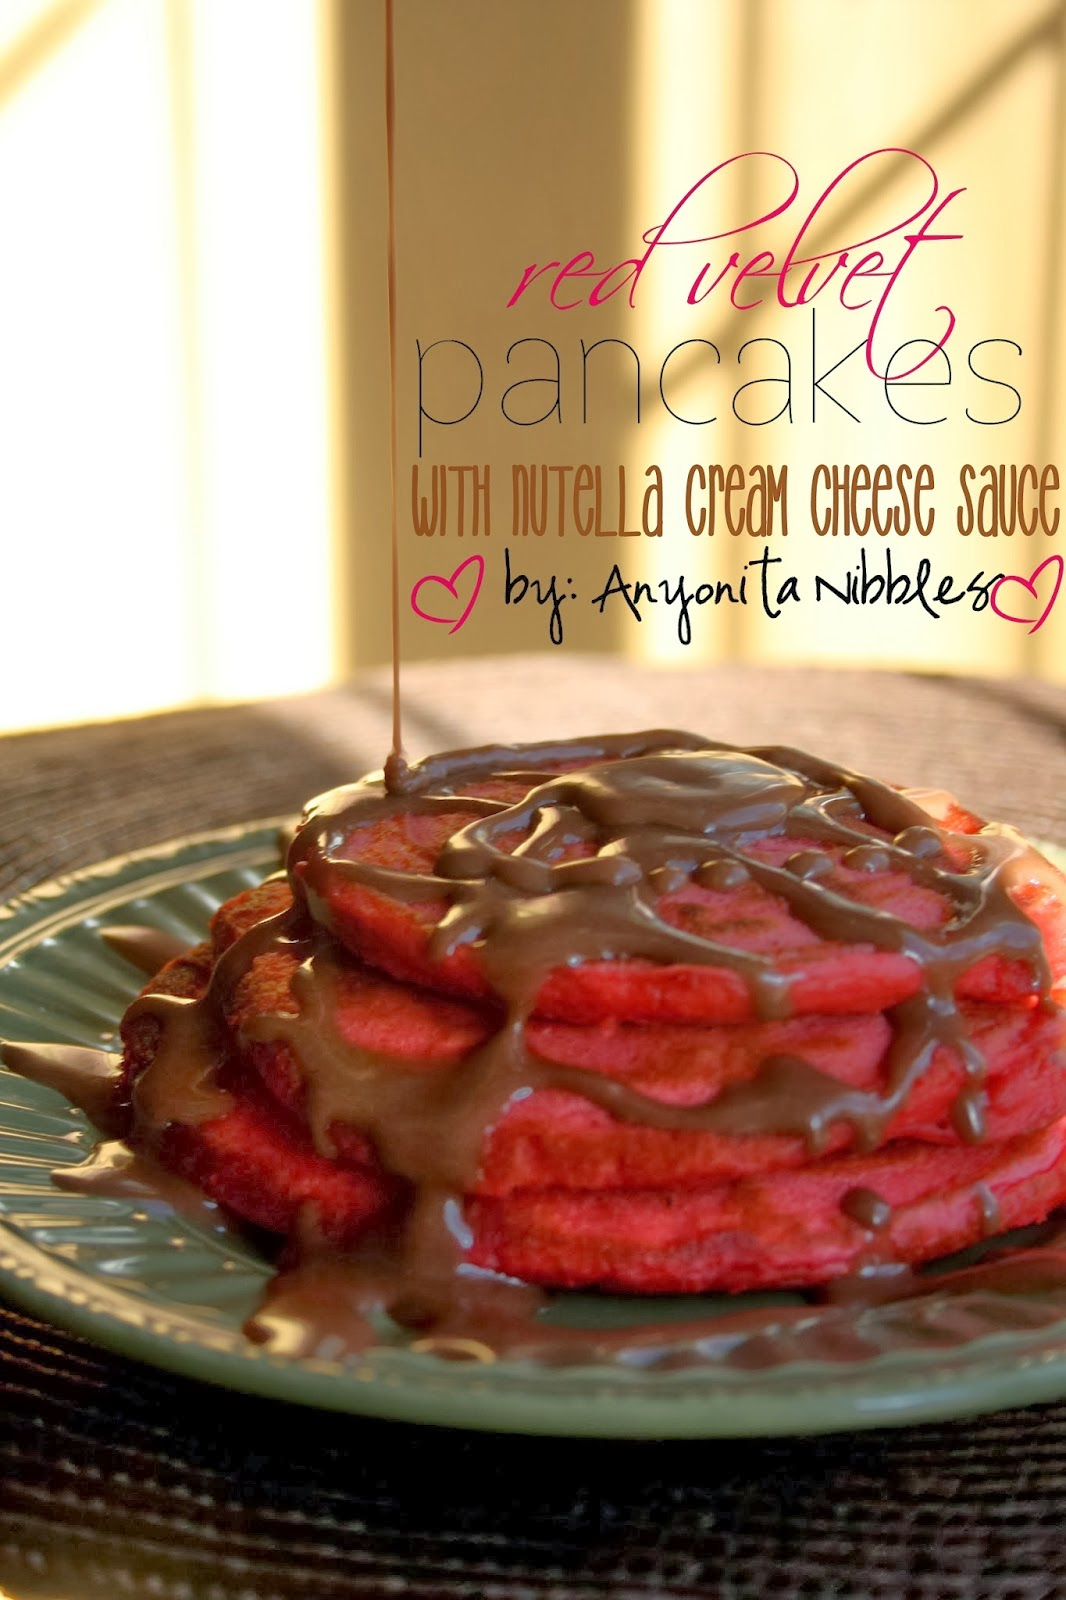 http://www.anyonita-nibbles.co.uk/2014/01/valentines-red-velvet-pancakes-nutella-cream-cheese-sauce.html